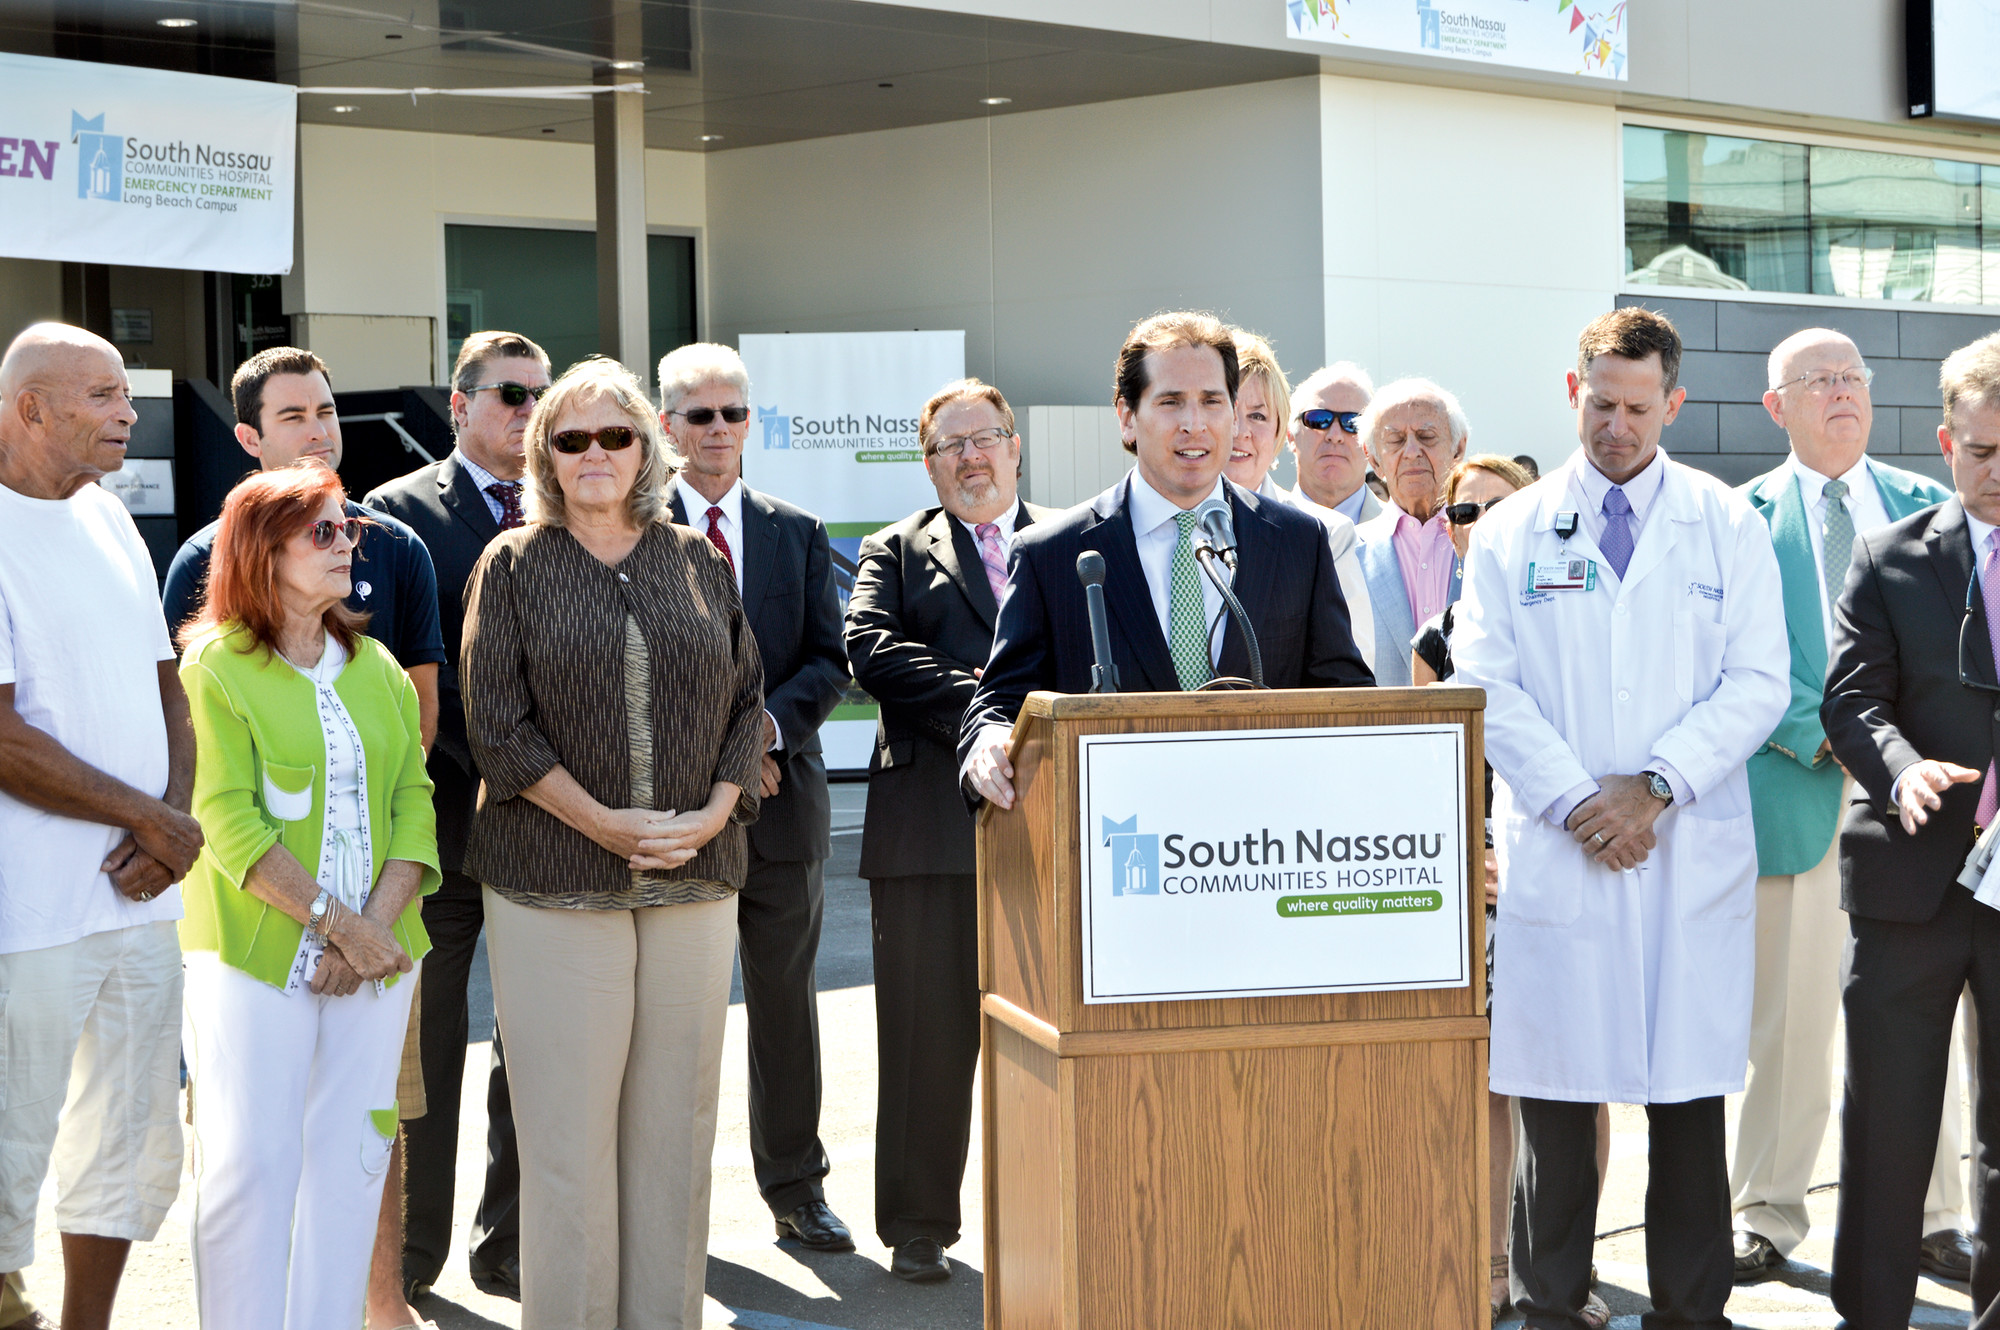 State Assemblyman Todd Kaminsky, at podium, County Legislator Denise Ford, third from left, and other officials spoke at the ribbon-cutting ceremony.